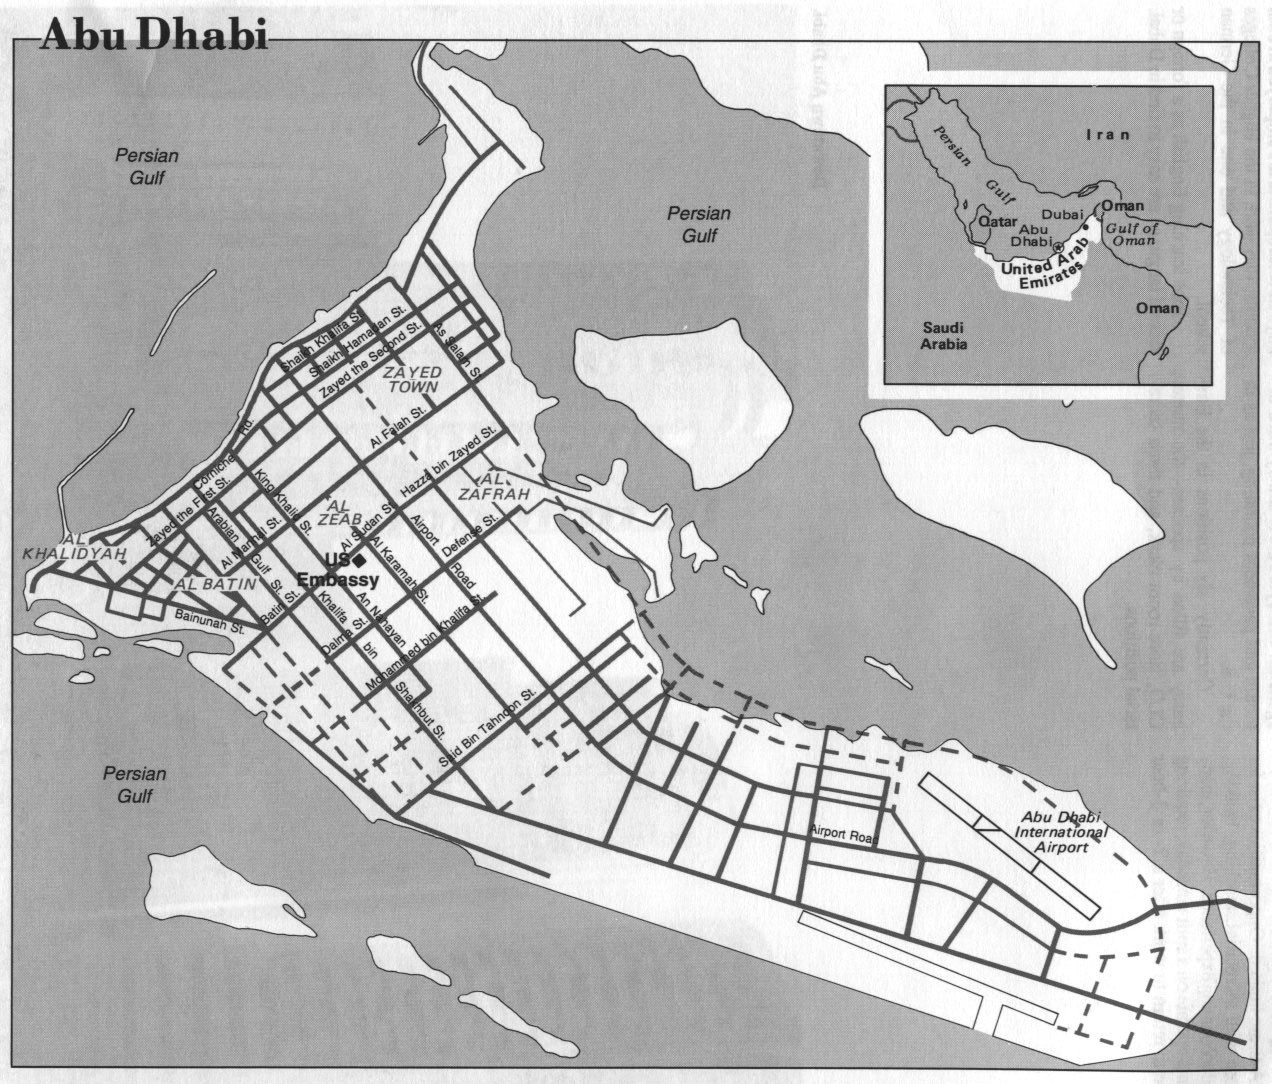 United Arab Emirates Maps - Perry-Castañeda Map Collection - UT ...